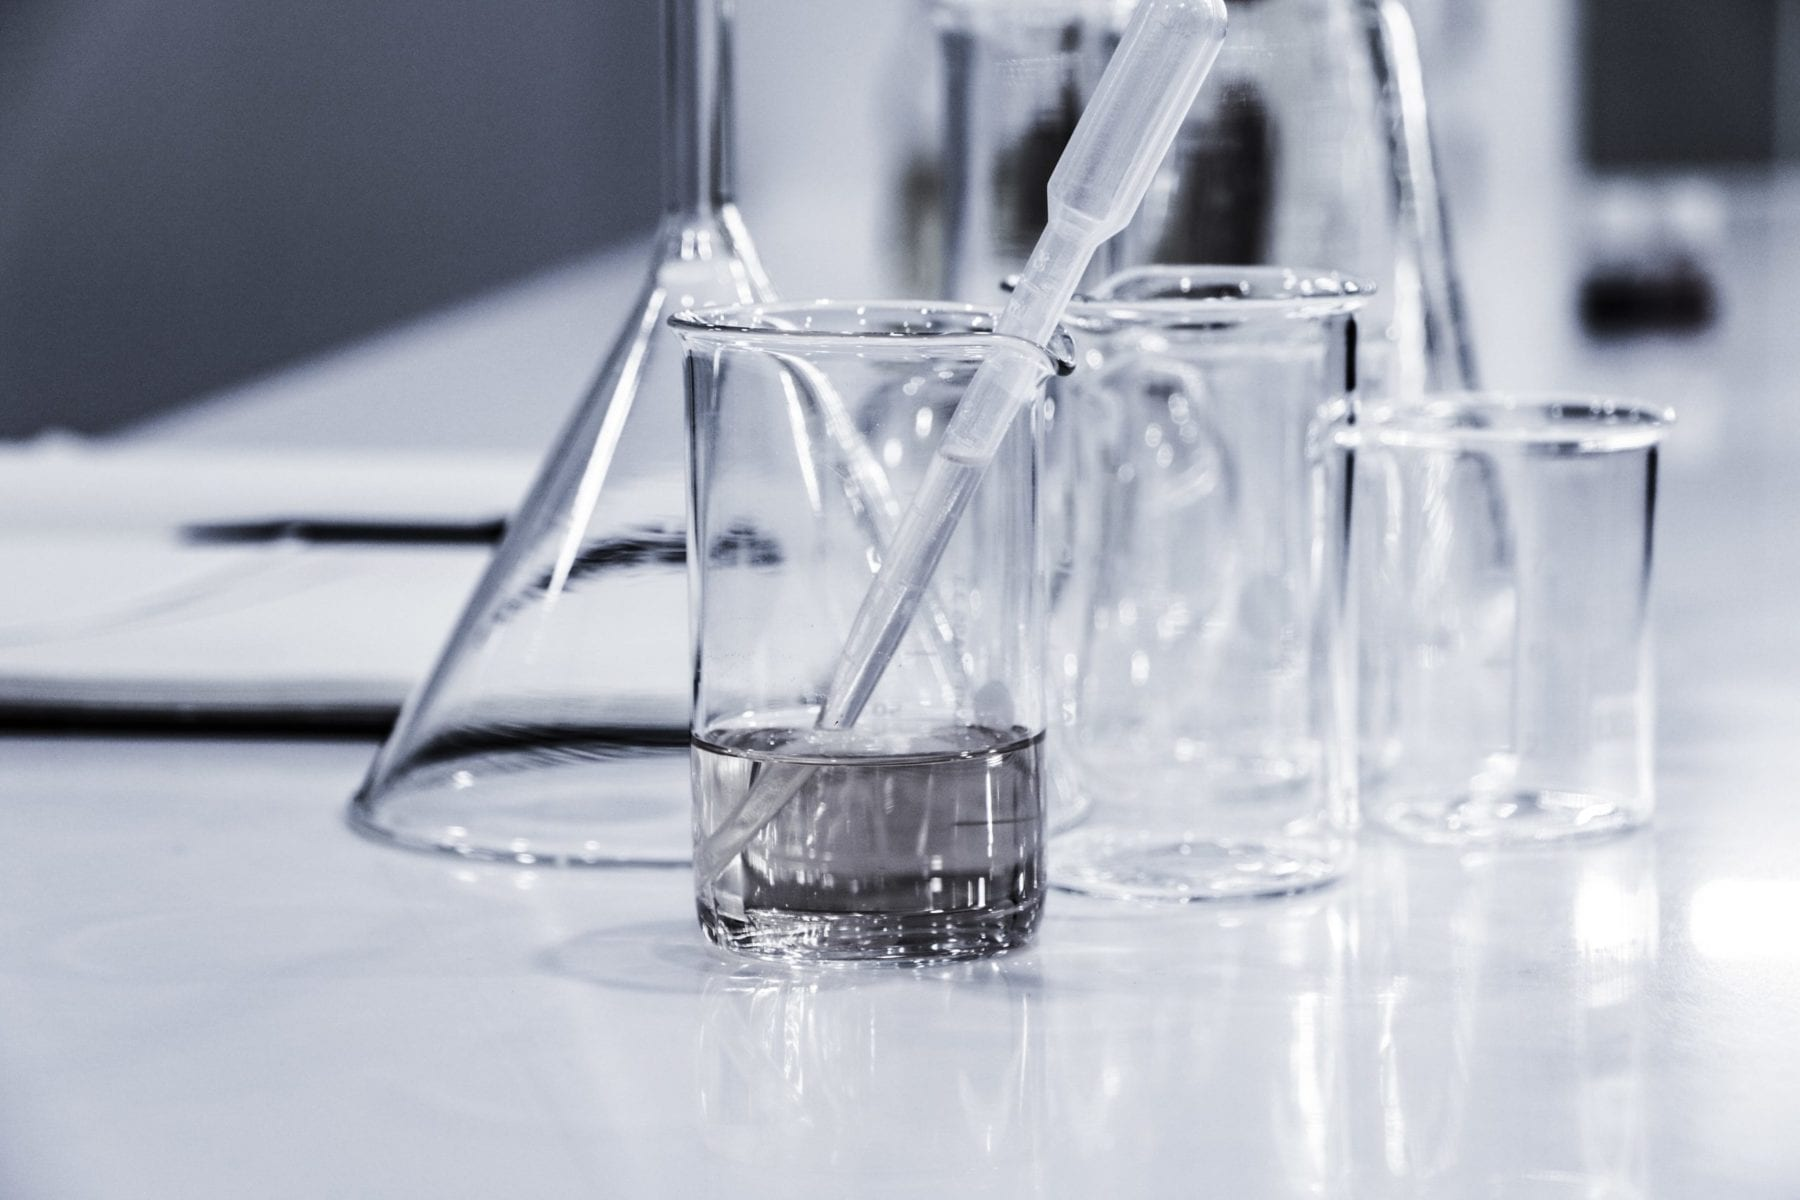 Get creative with an at-home science experiment